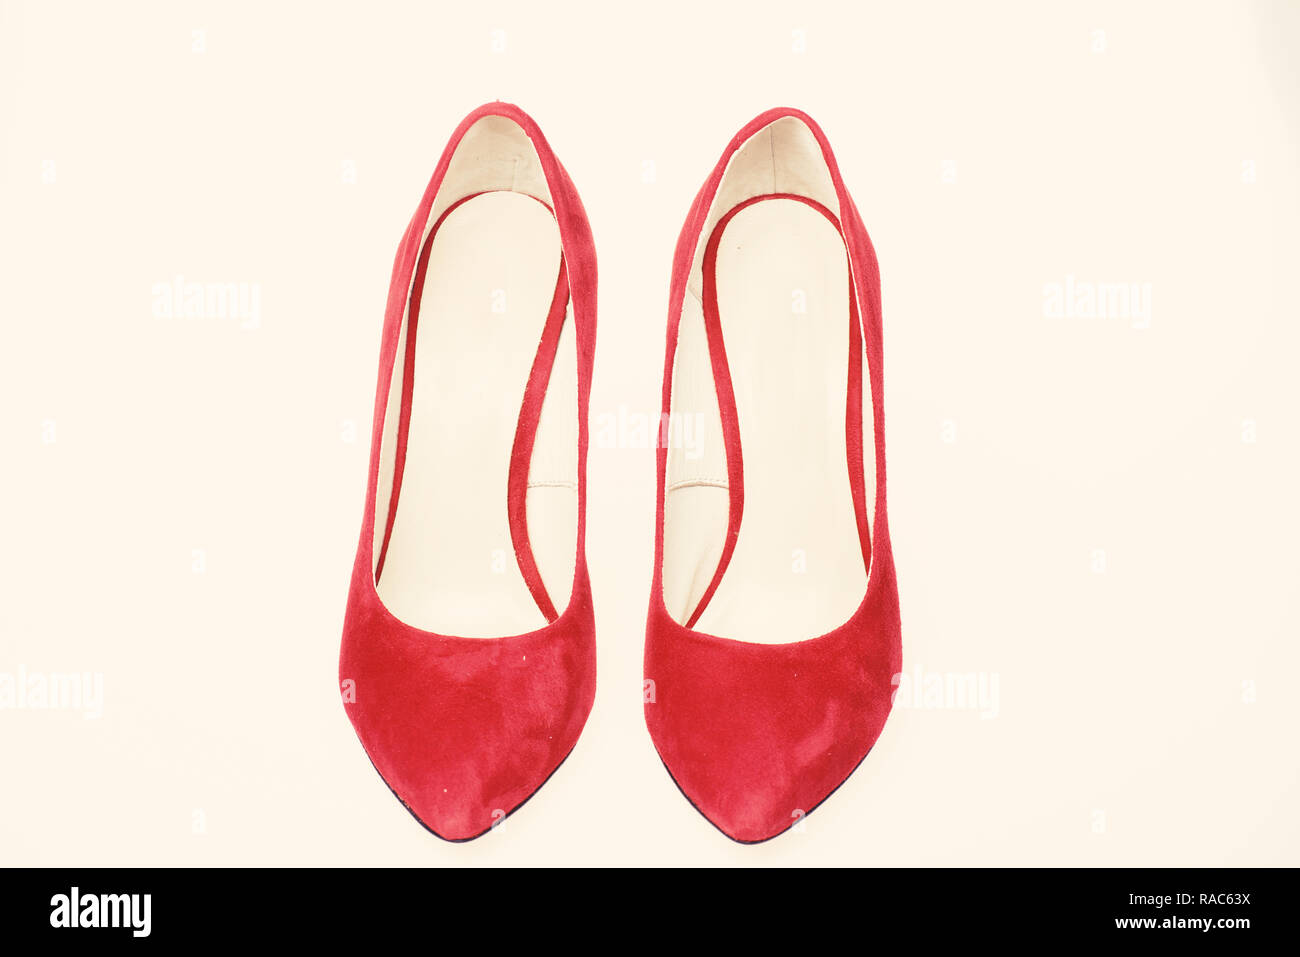 36fd90426c Footwear for women with thin high heels. Pair of fashionable high heeled  pump shoes.